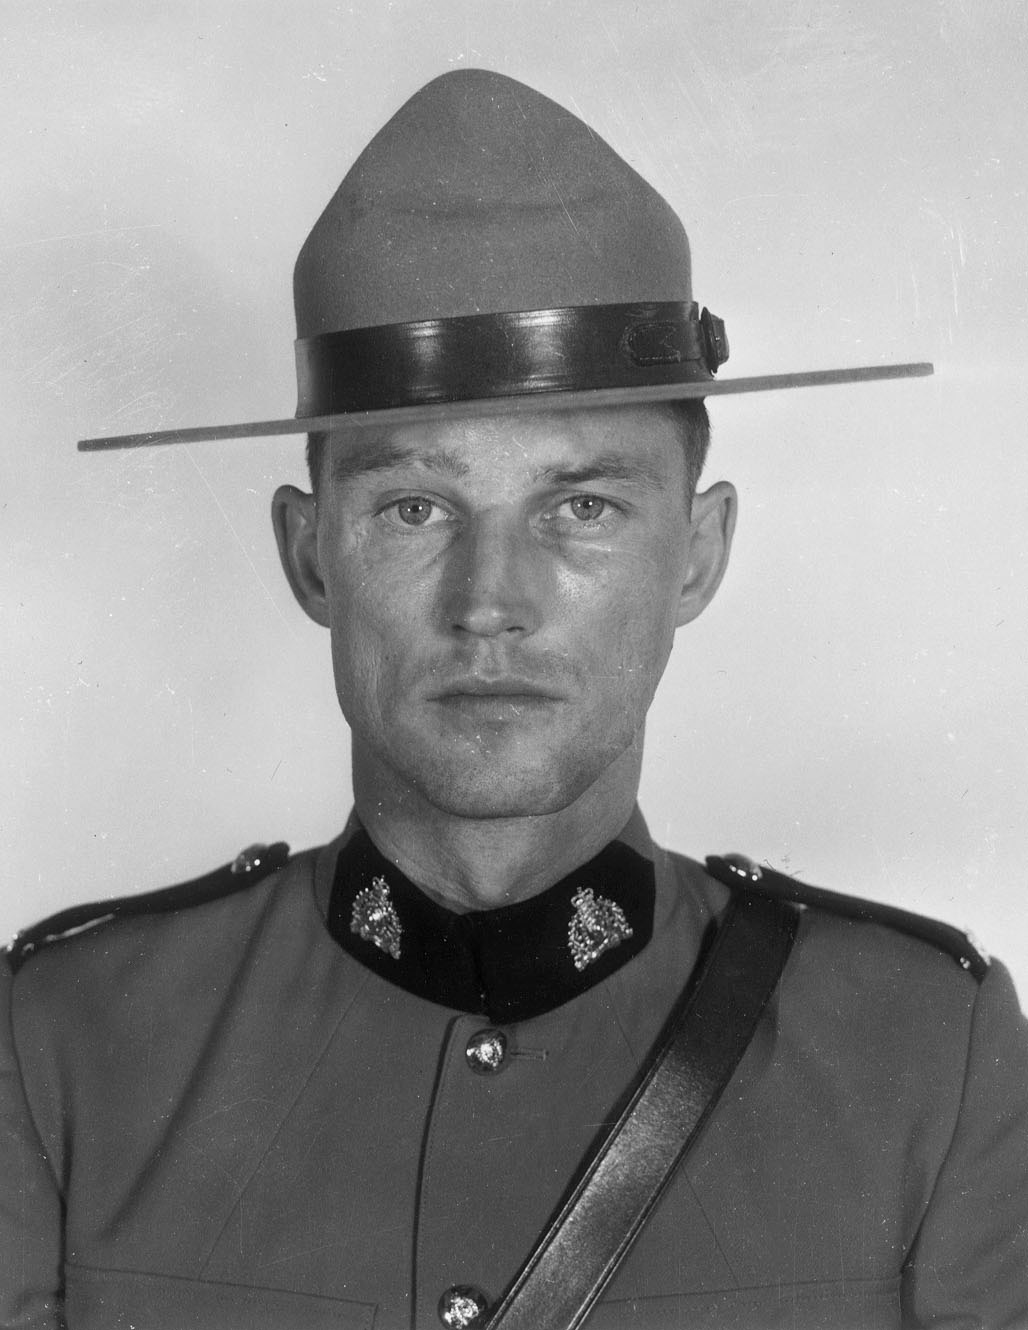 Constable Douglas Bernard Anson – © Her Majesty the Queen in Right of Canada as represented by the Royal Canadian Mounted Police